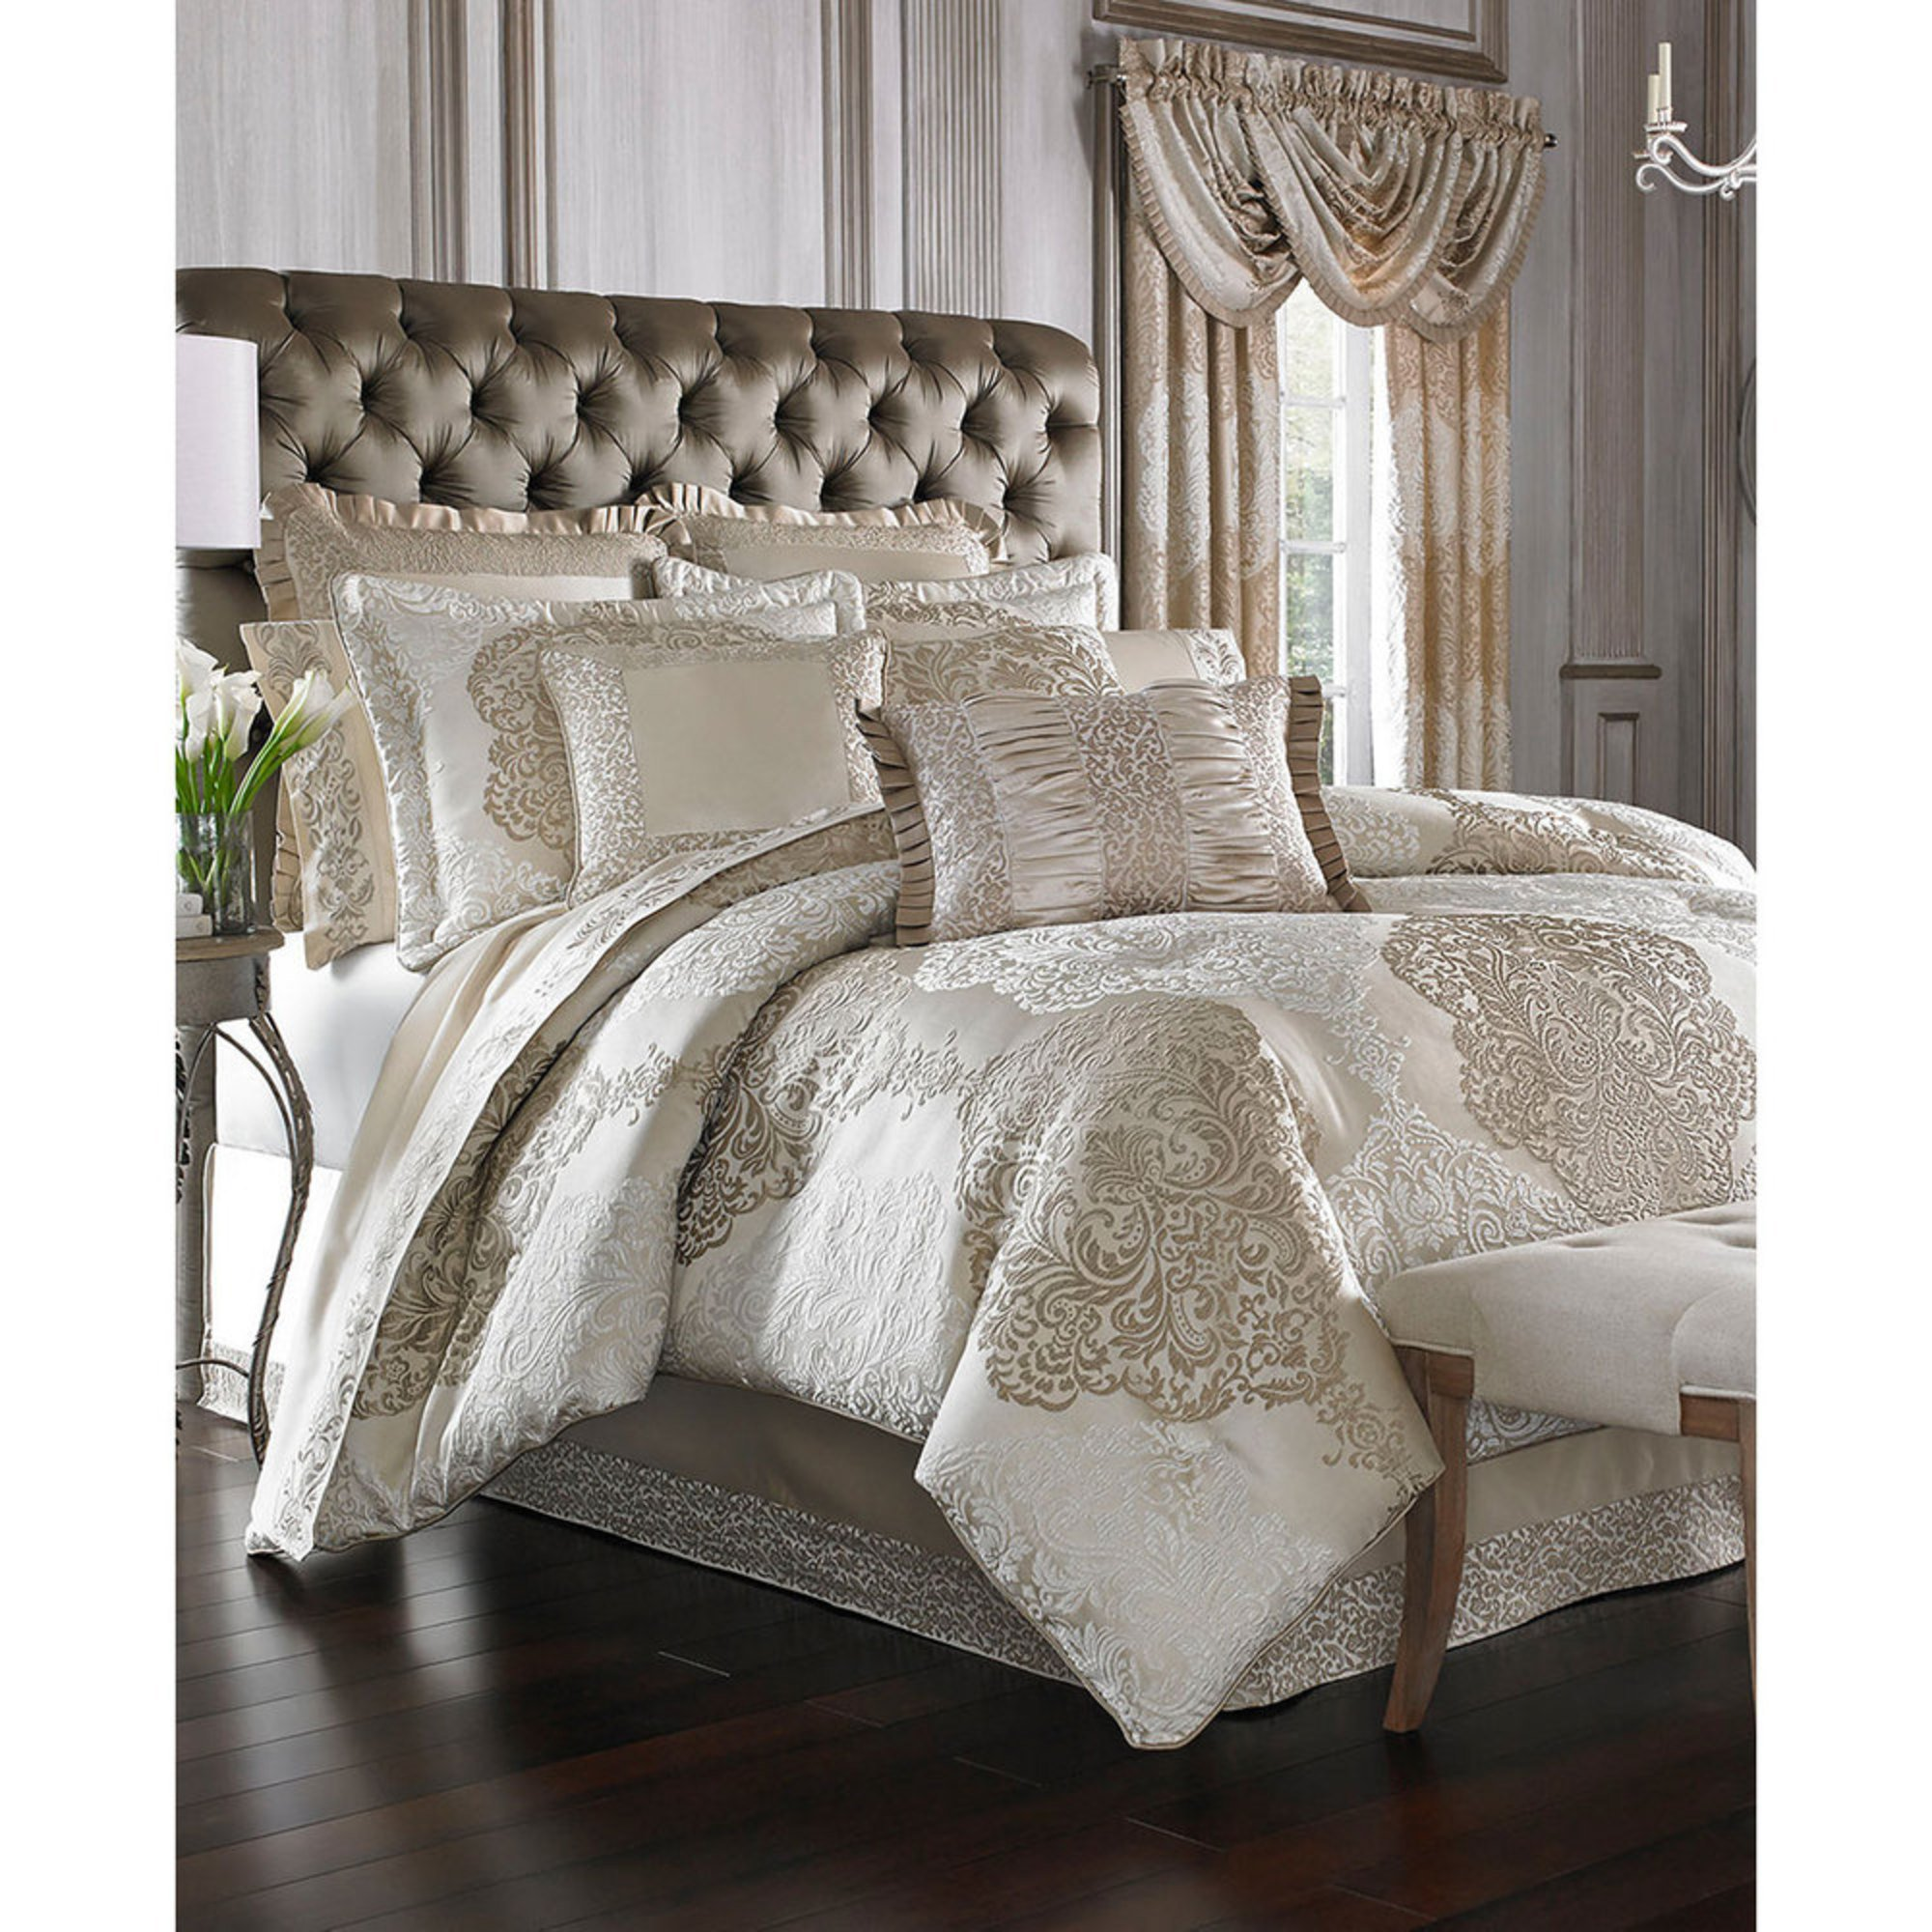 queen sets bedding cheap black gold king cover grey purple size blue and comforte decoration duvet red white bed set comforter cream covers